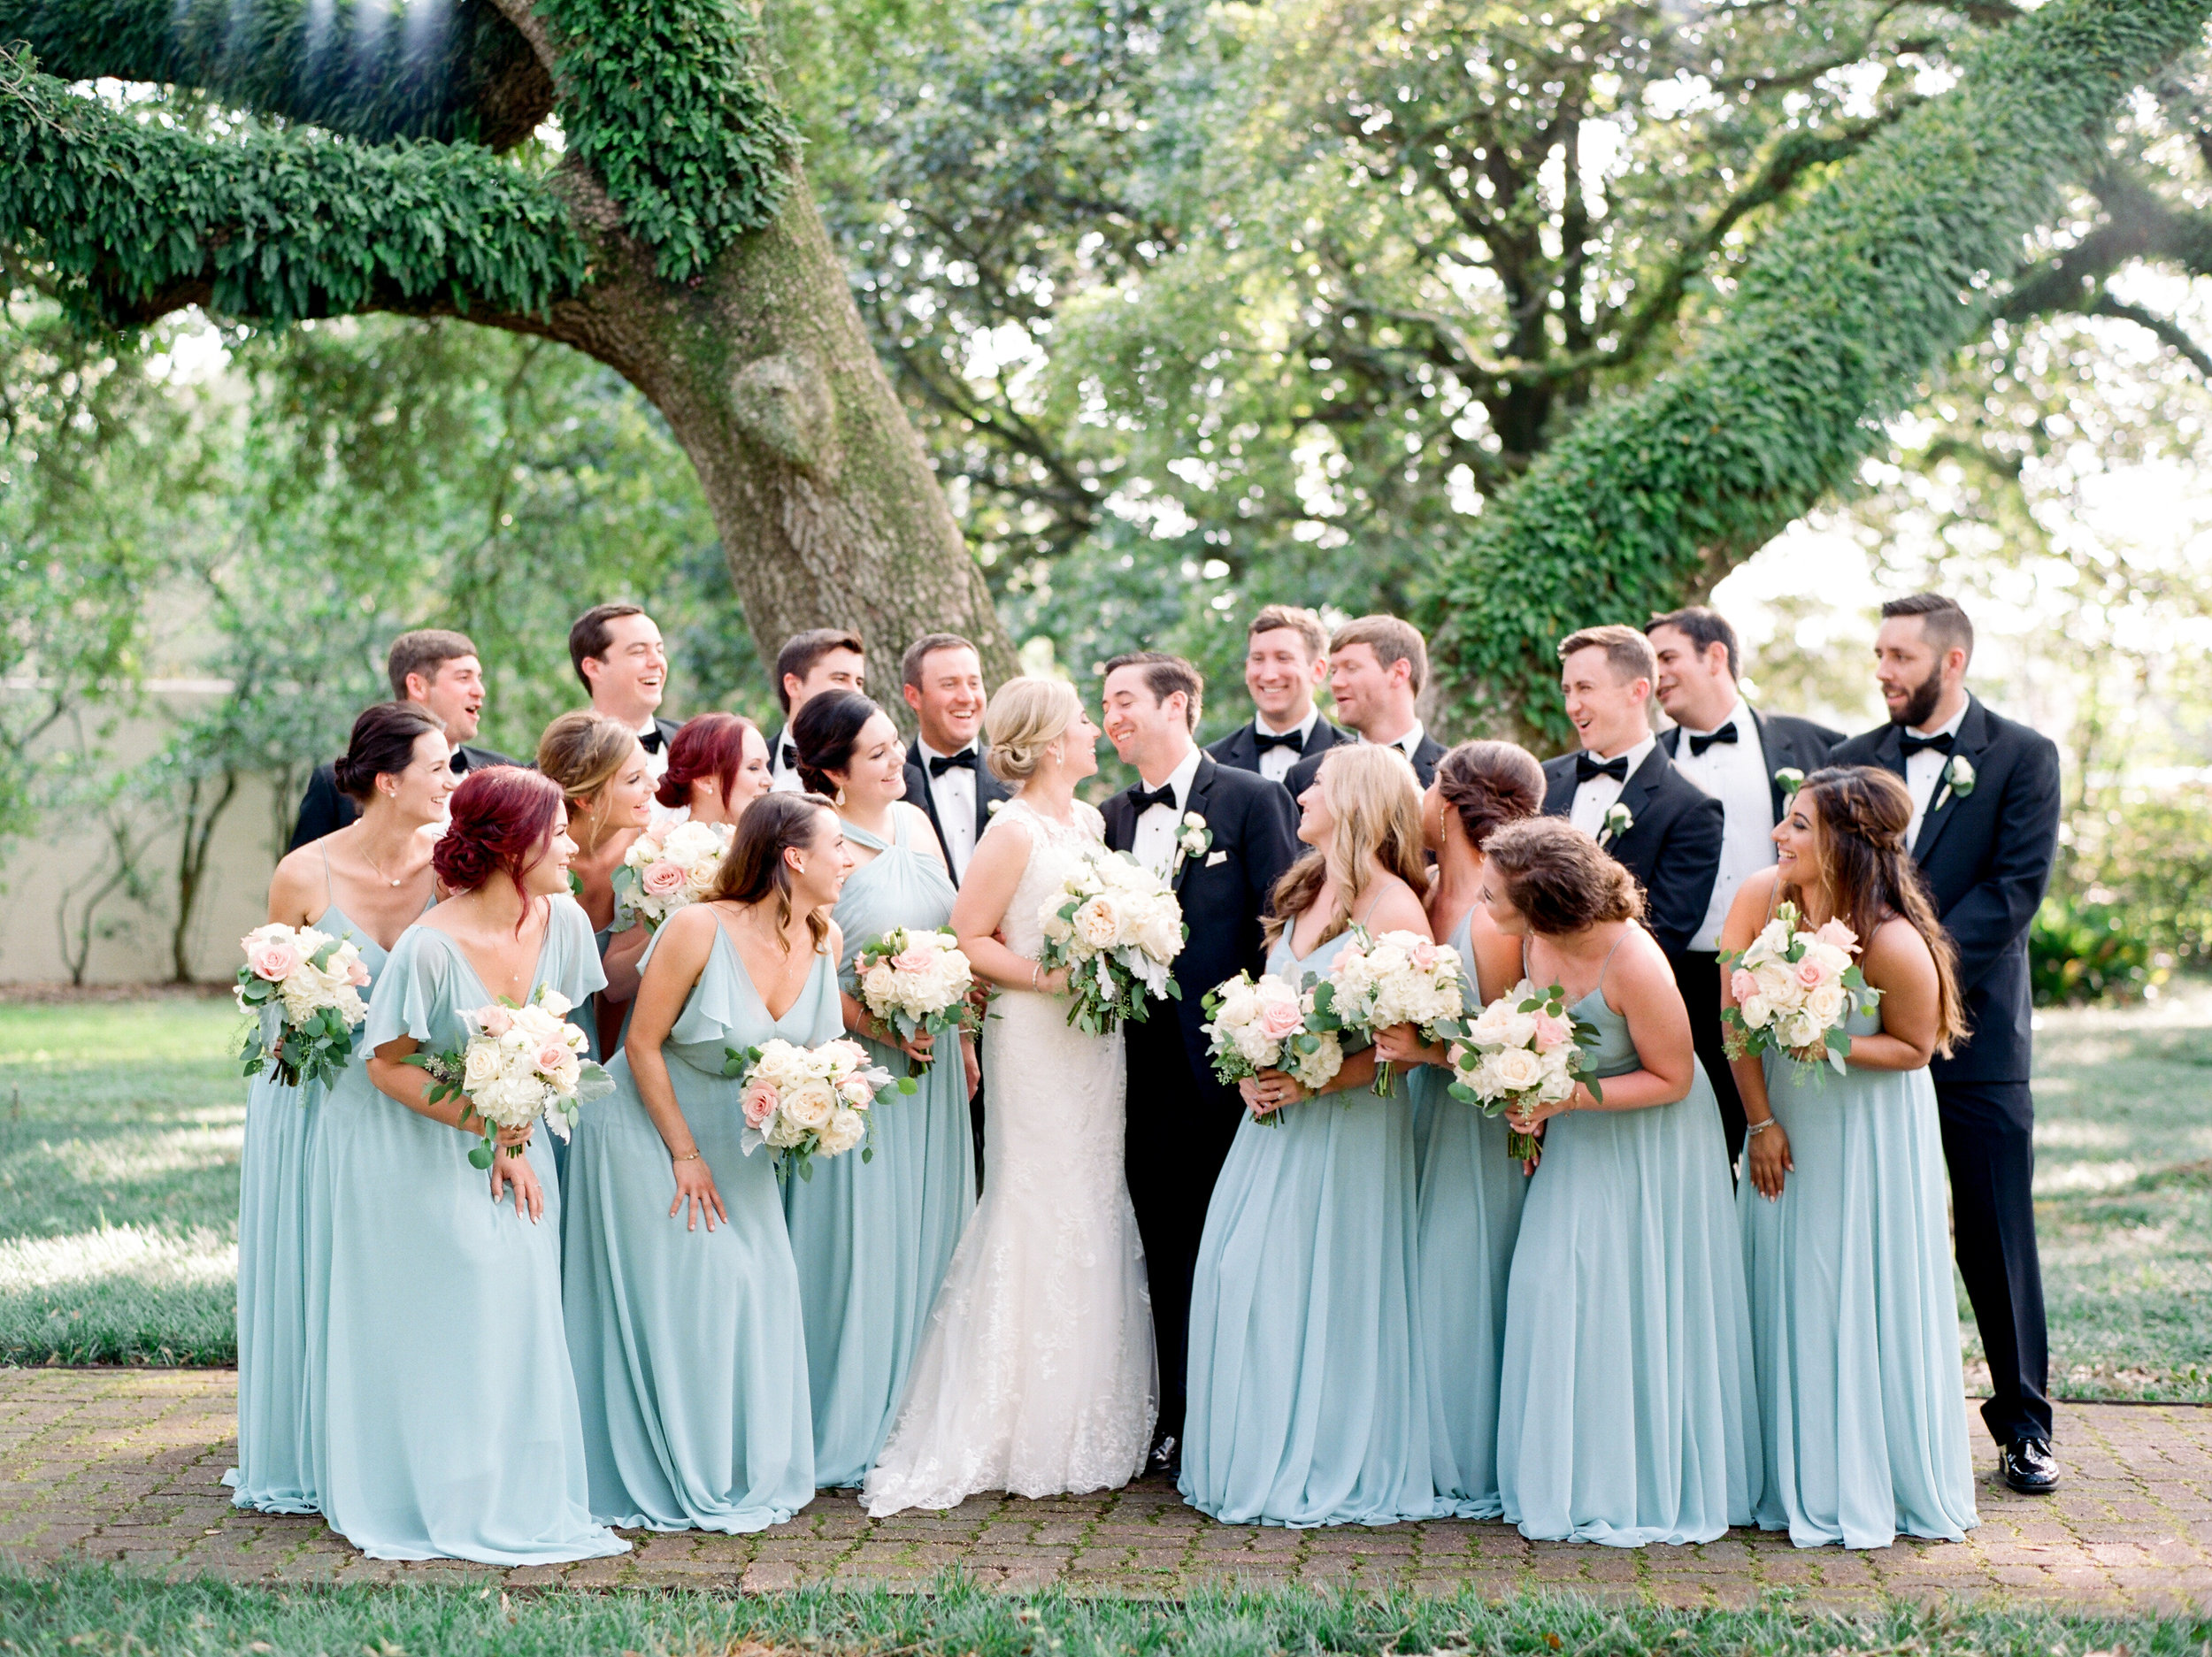 Southern Fete, Southern Wedding, Bridal Party, Sarah Beth Photography, Flowers by Rodney